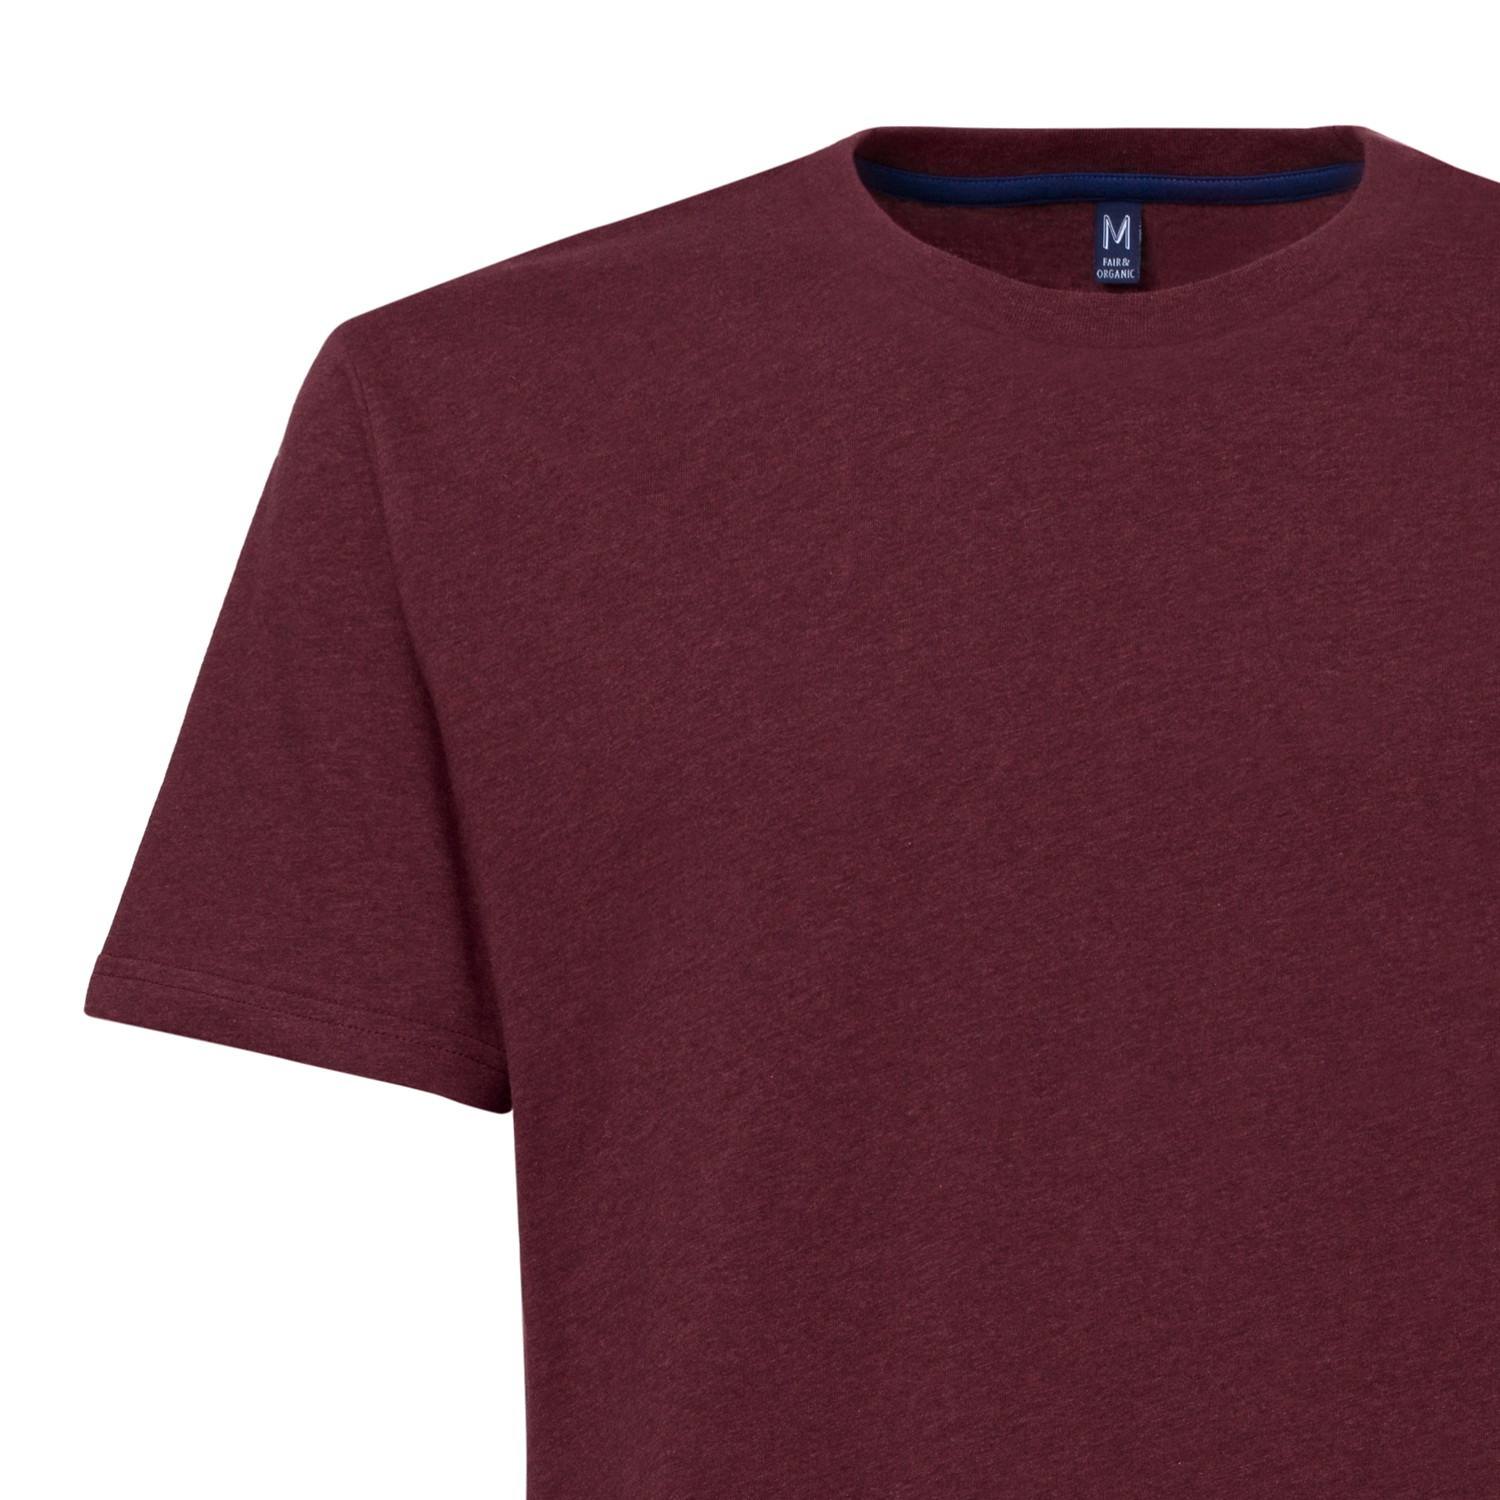 Tt02 t shirt dark red melange gots fairtrade gentlemen t Fair trade plain t shirts